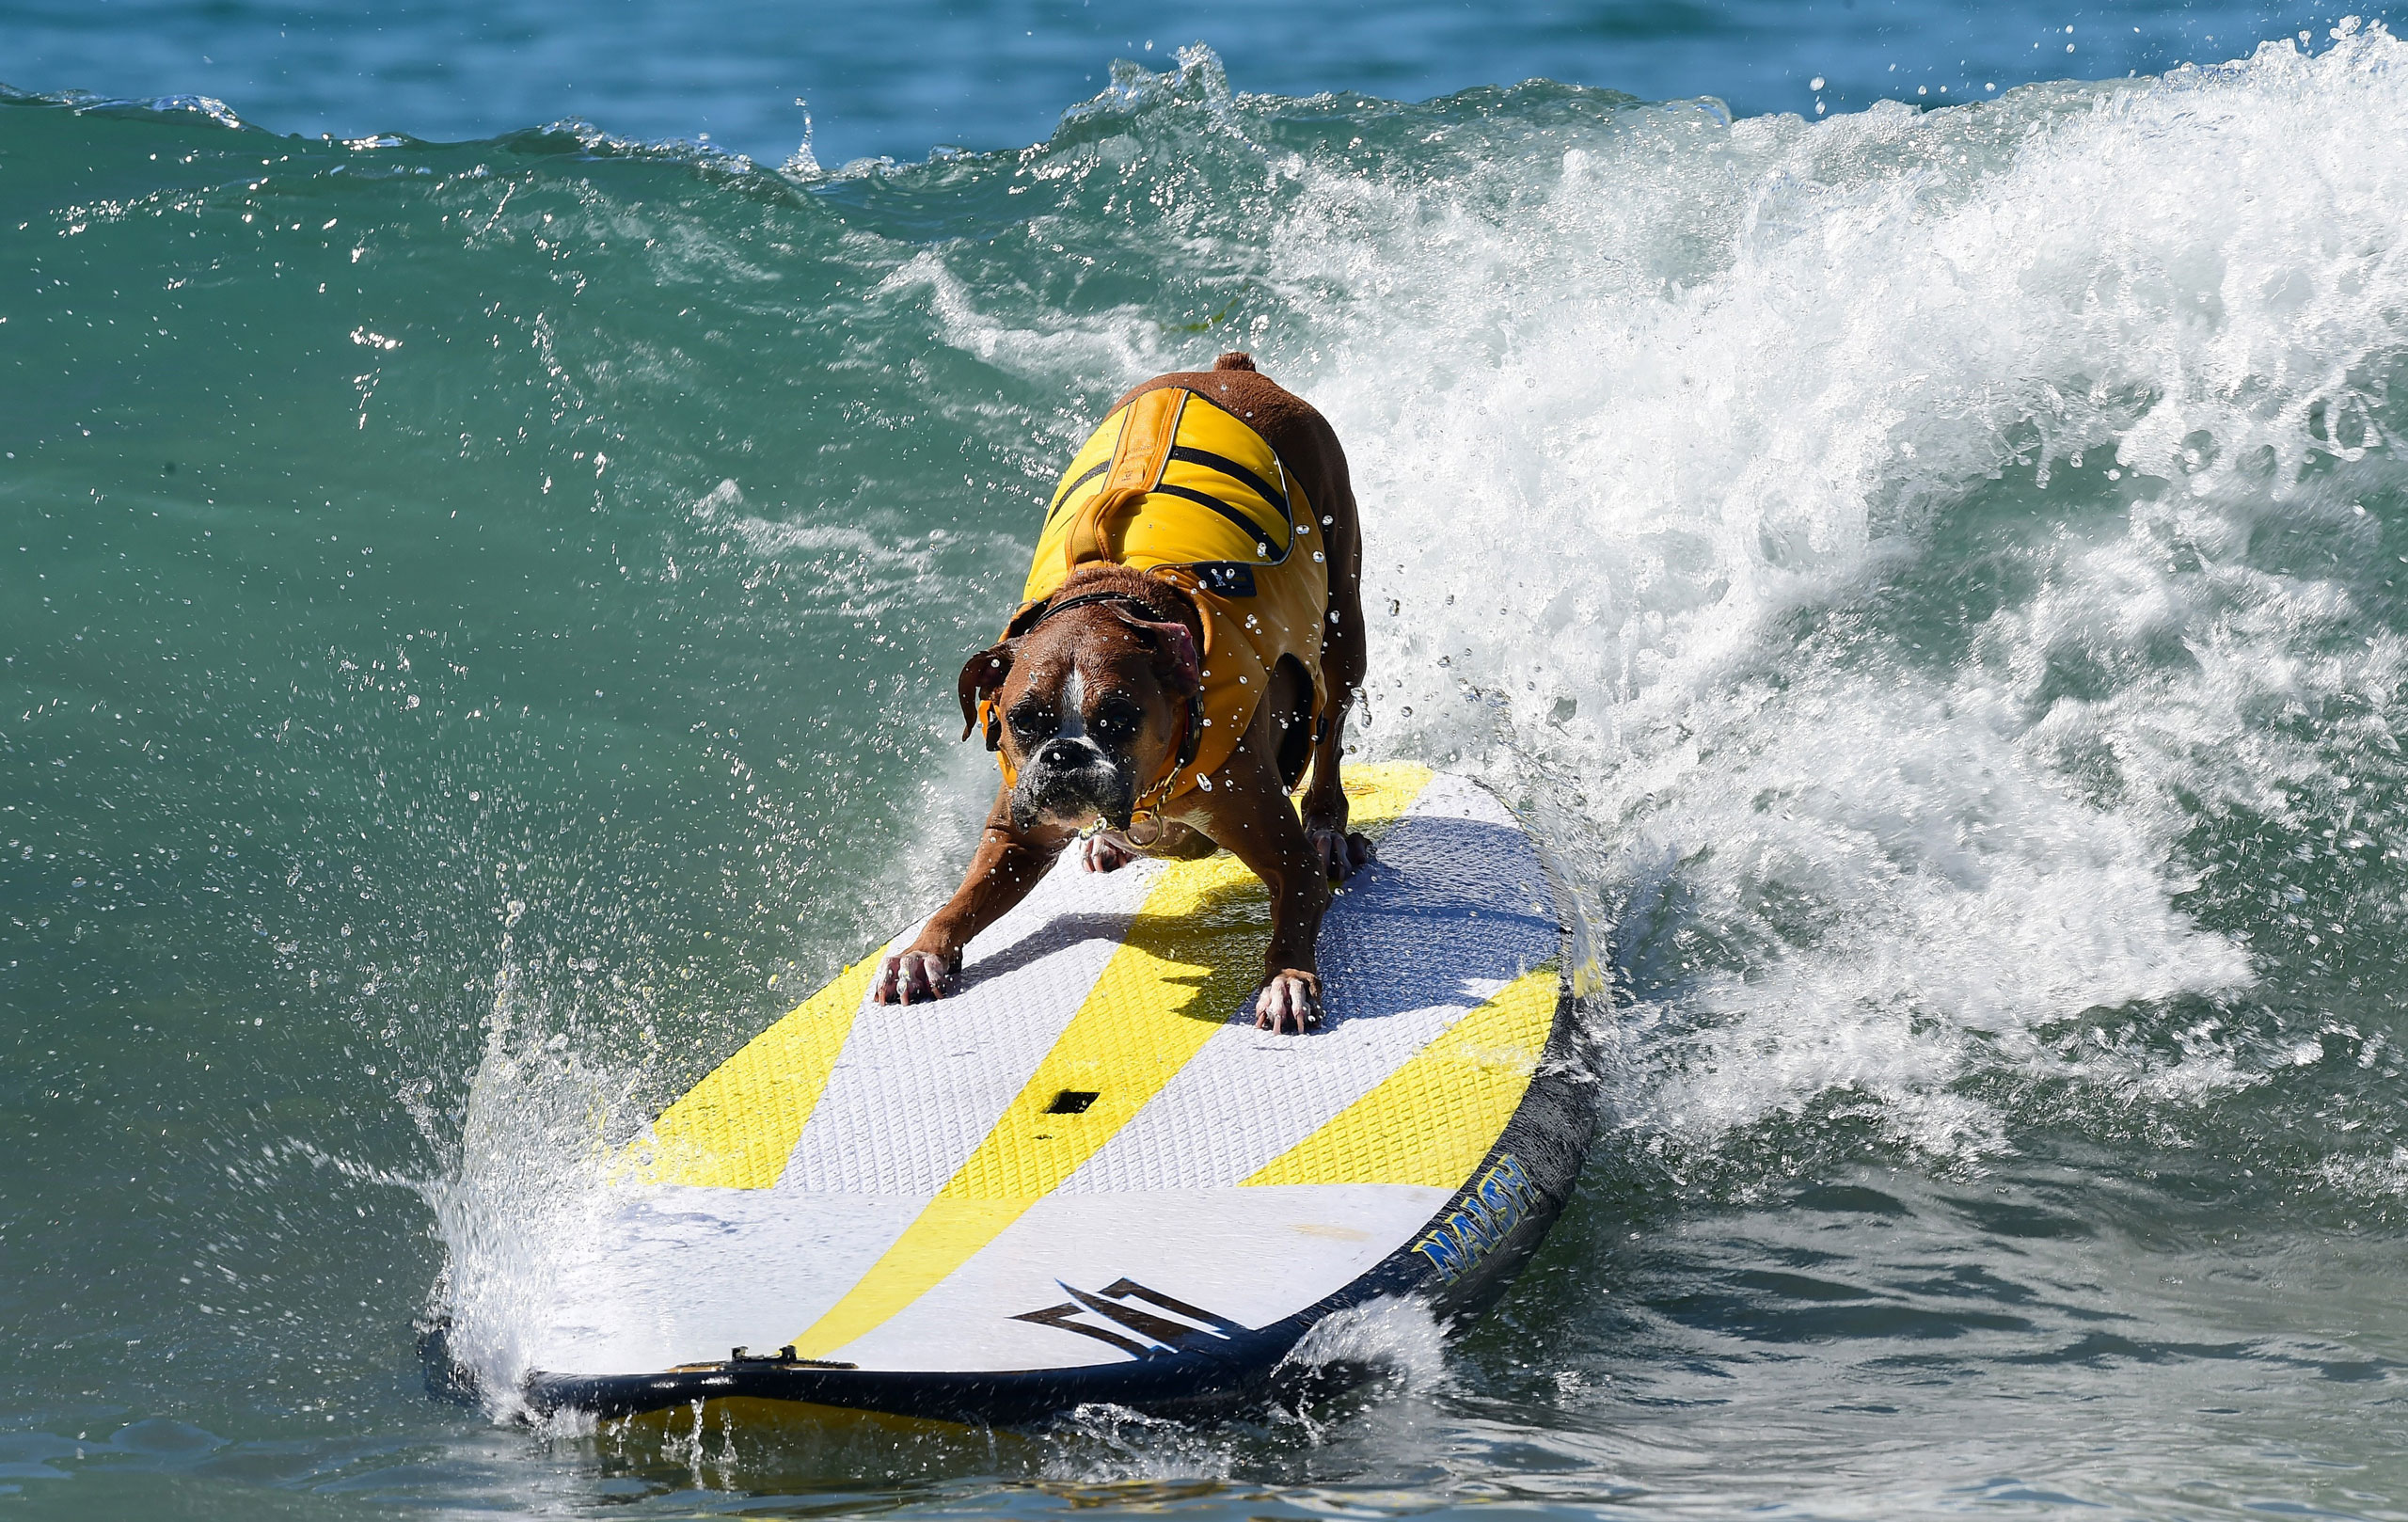 Dogs, big and small, and some in tandem or with their owner, participate in the 7th annual Surf City Surf Dog contest in Huntington Beach, Calif., Sept. 27, 2015.